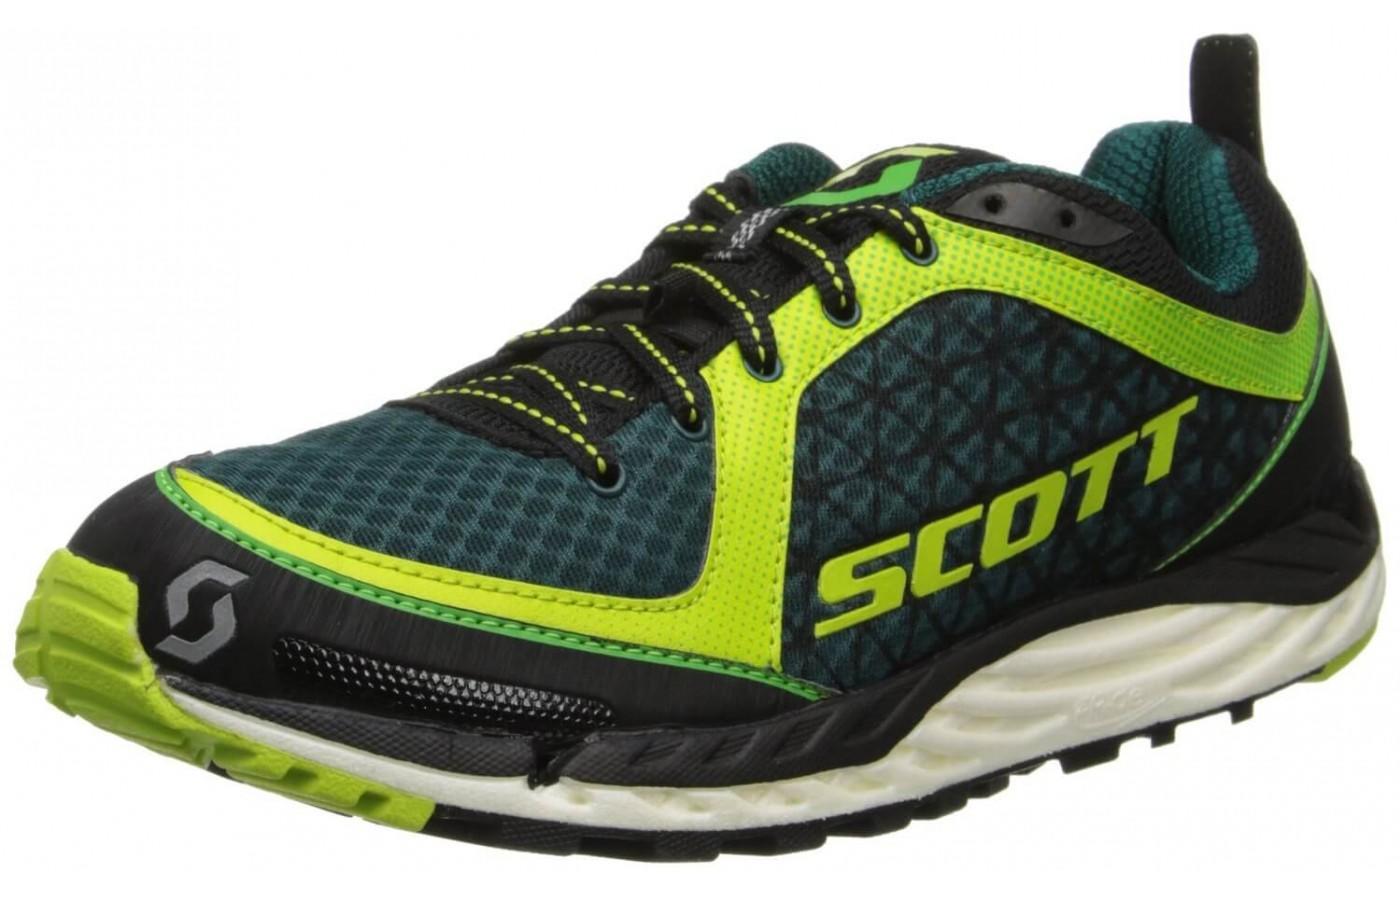 Scott T2 Kinabalu reviewed and tested